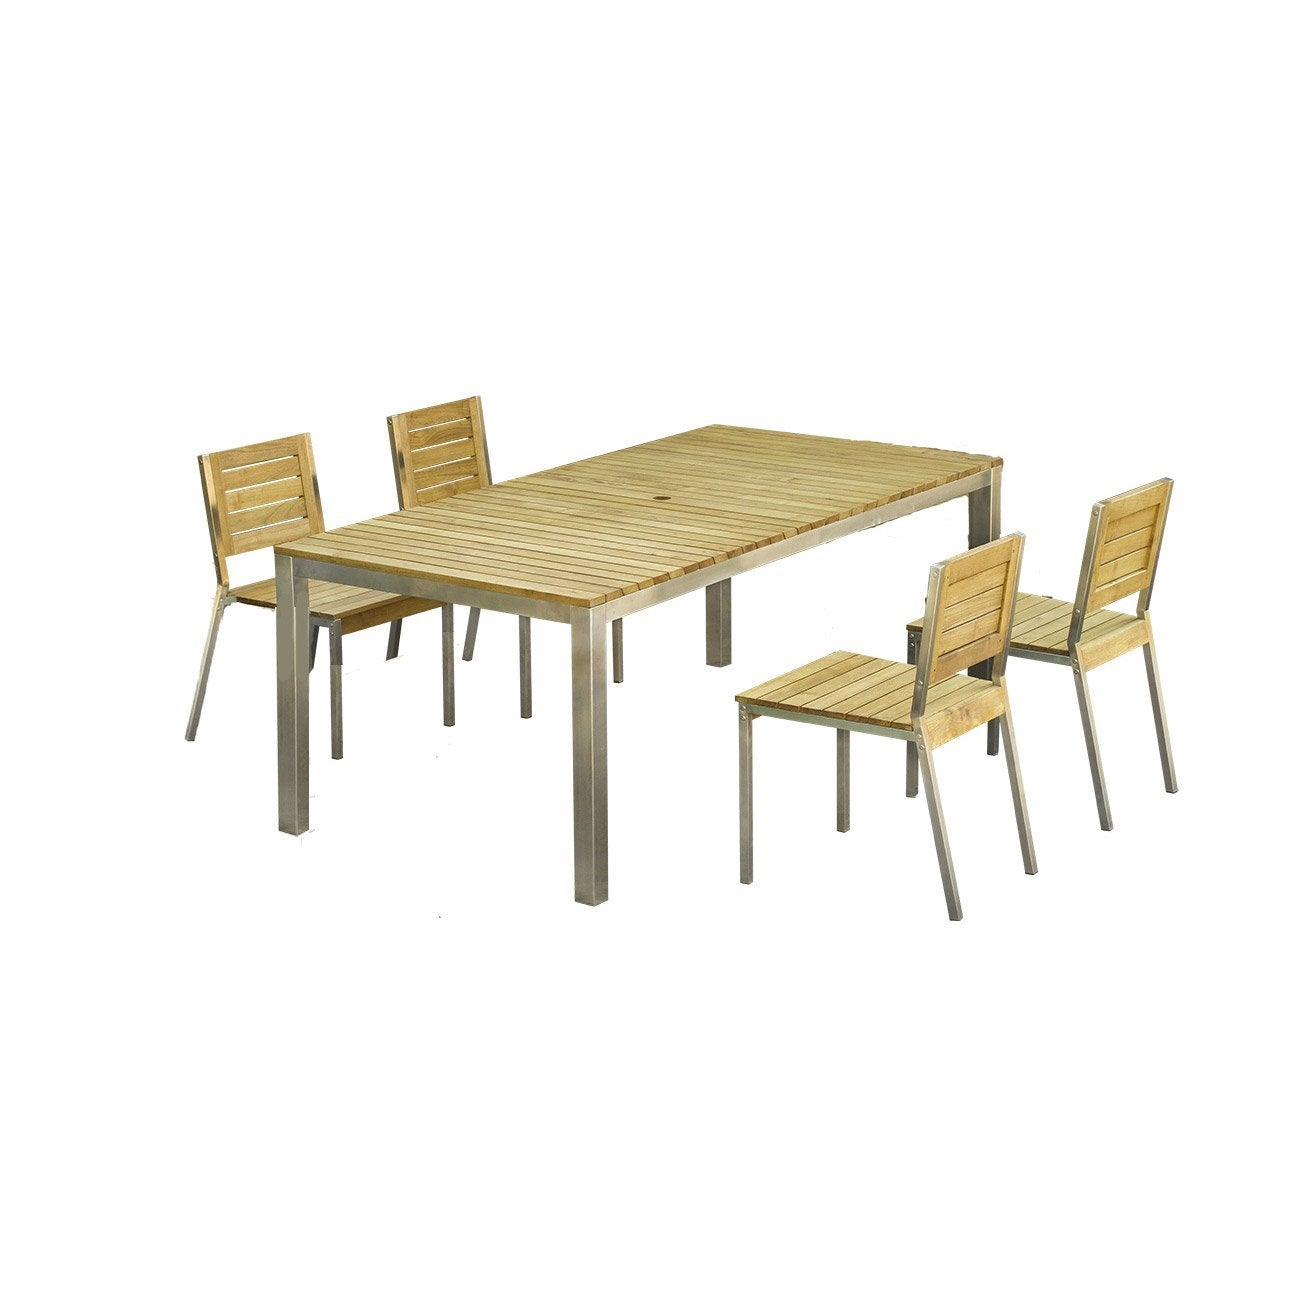 Plan table de jardin en bois avec banc integre jsscene for Plan table en bois